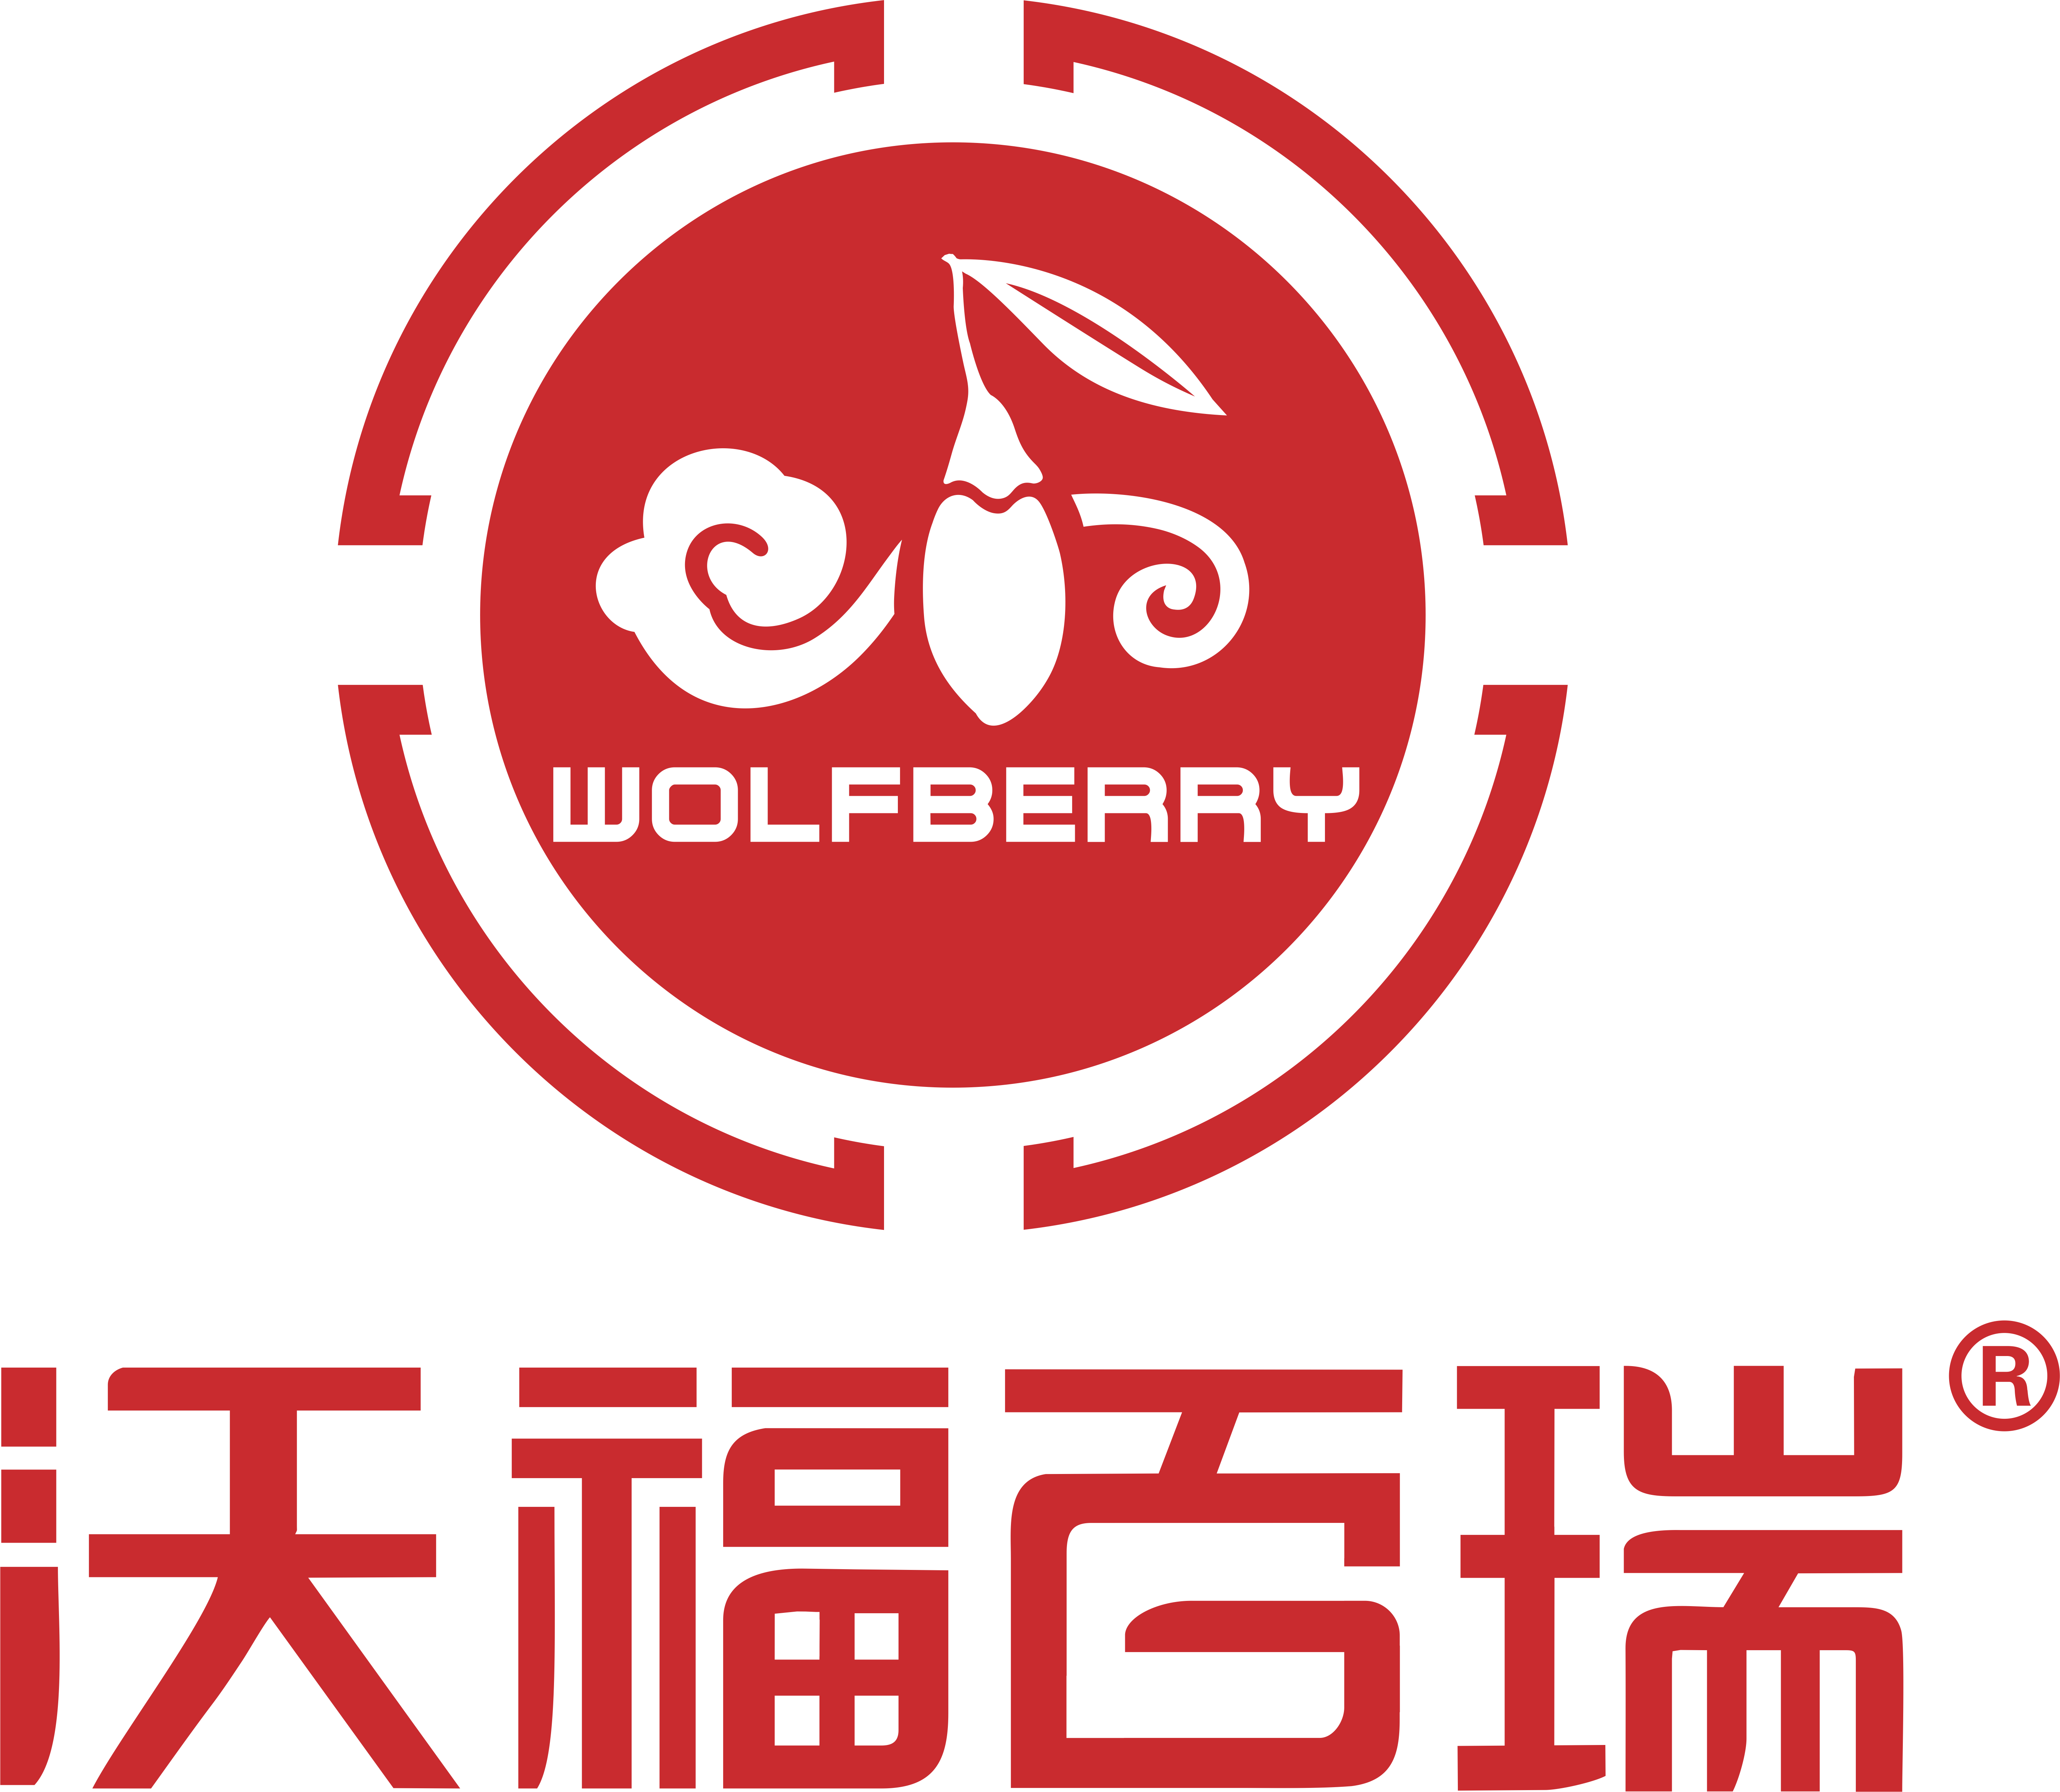 Ningxia Wolfberry Goji Industry Co., Ltd.